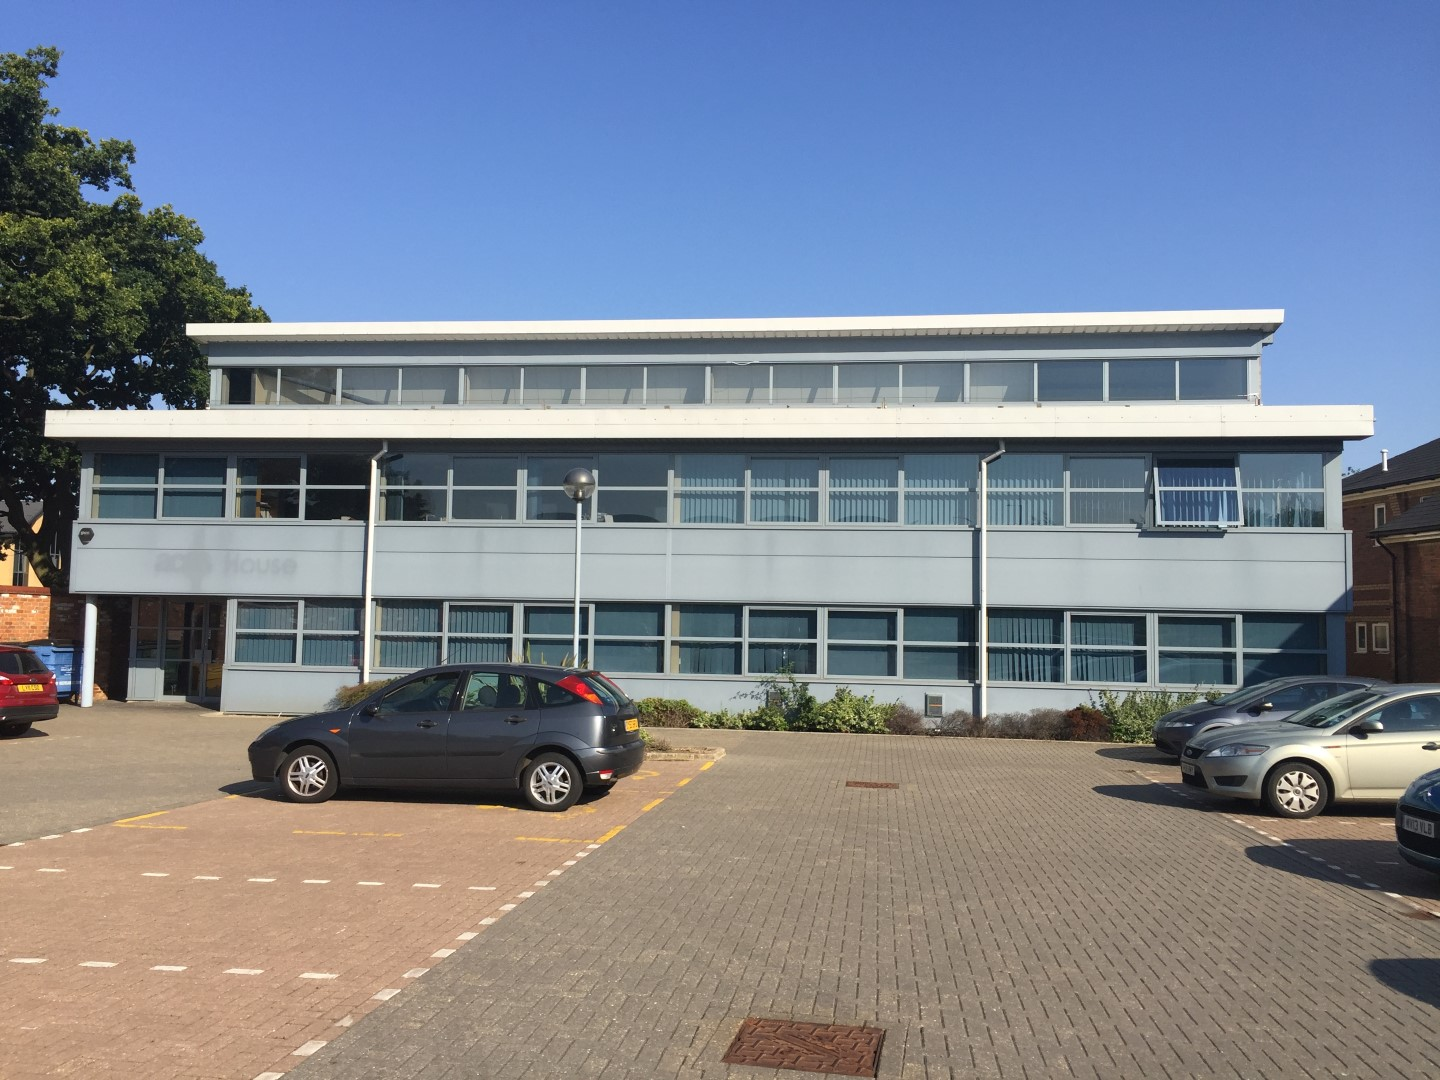 High Specification Office Building In Bury St Edmunds To